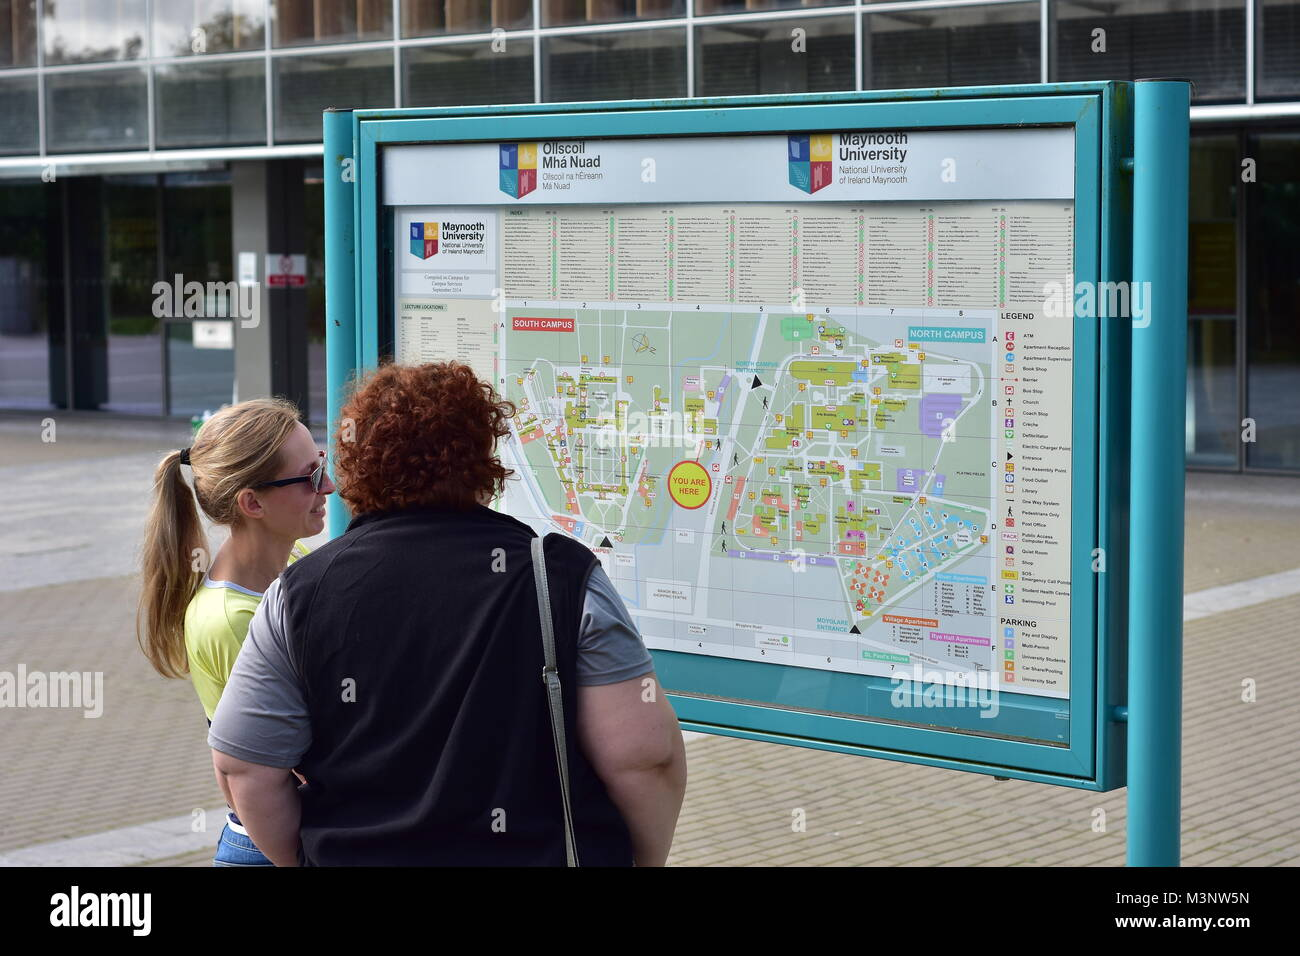 Visitors at campus site map of Maynooth University in town of Maynooth in Ireland. - Stock Image